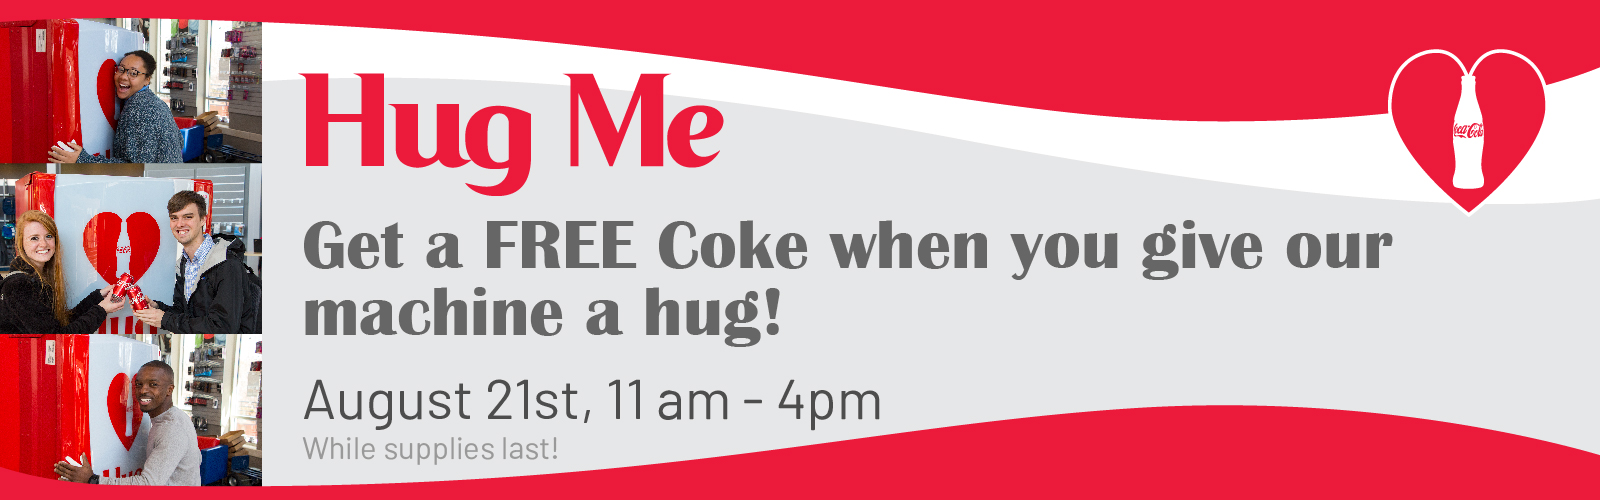 Hug Me Coke Event | August 21st 11am - 4pm